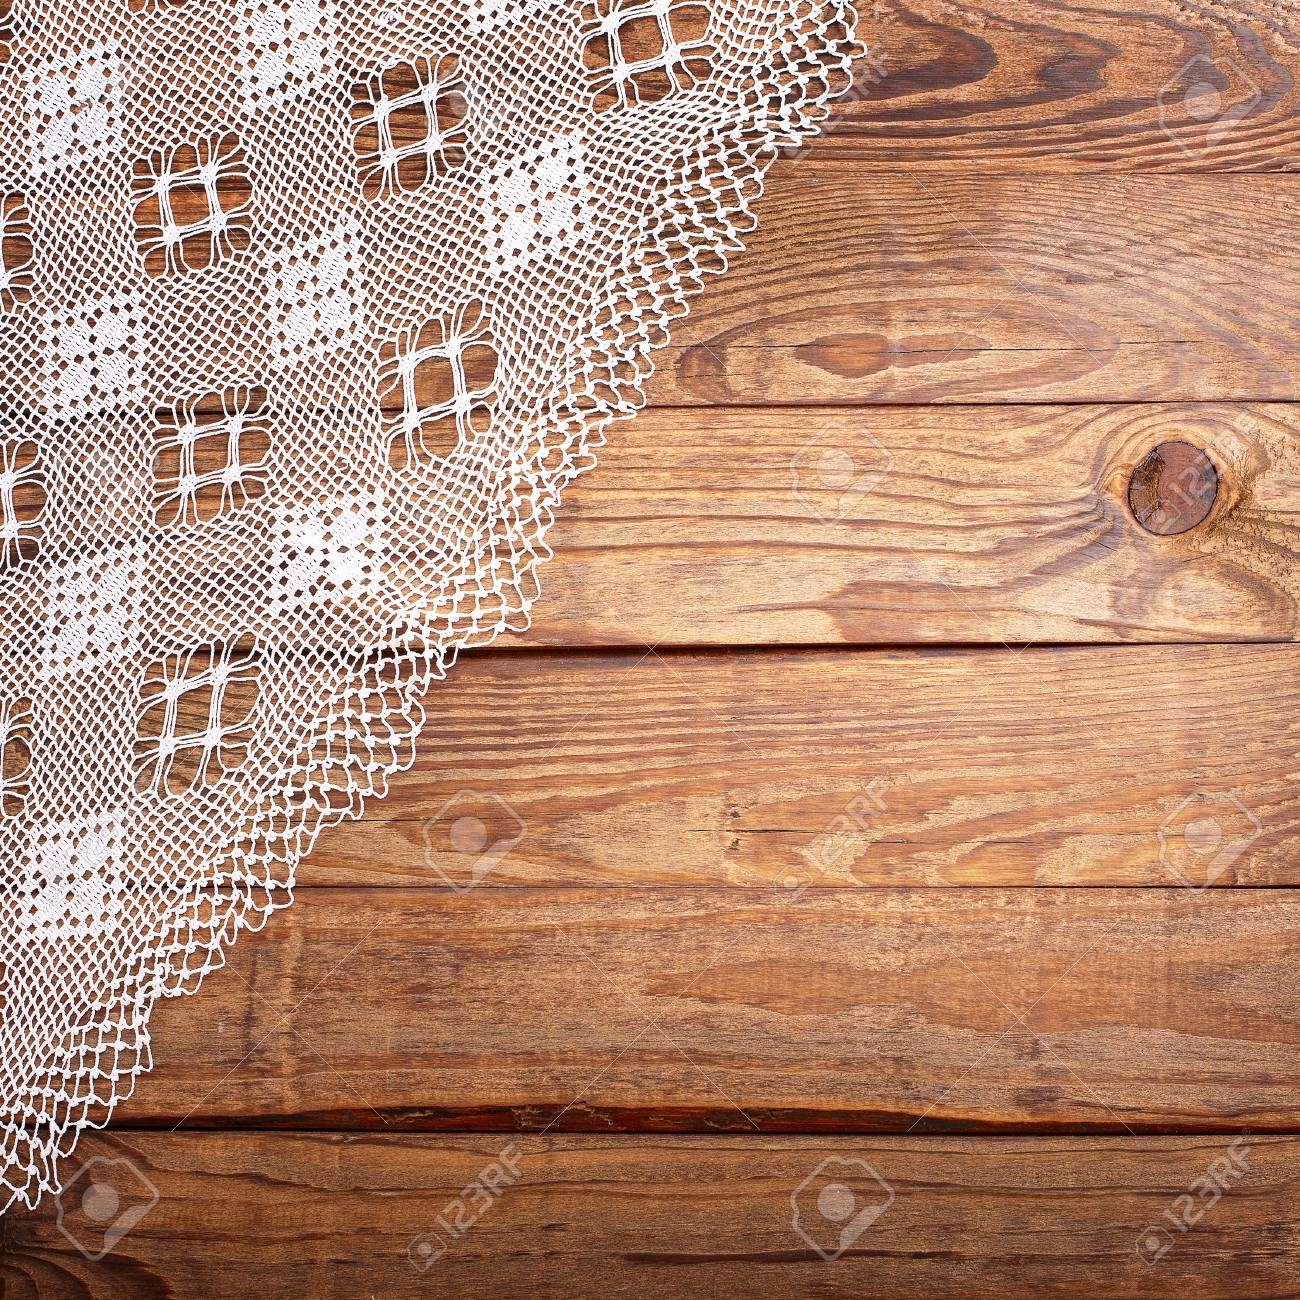 Stock Photo   Wood Texture, Wooden Table With White Lace Tablecloth Top  View. Collage For Menu